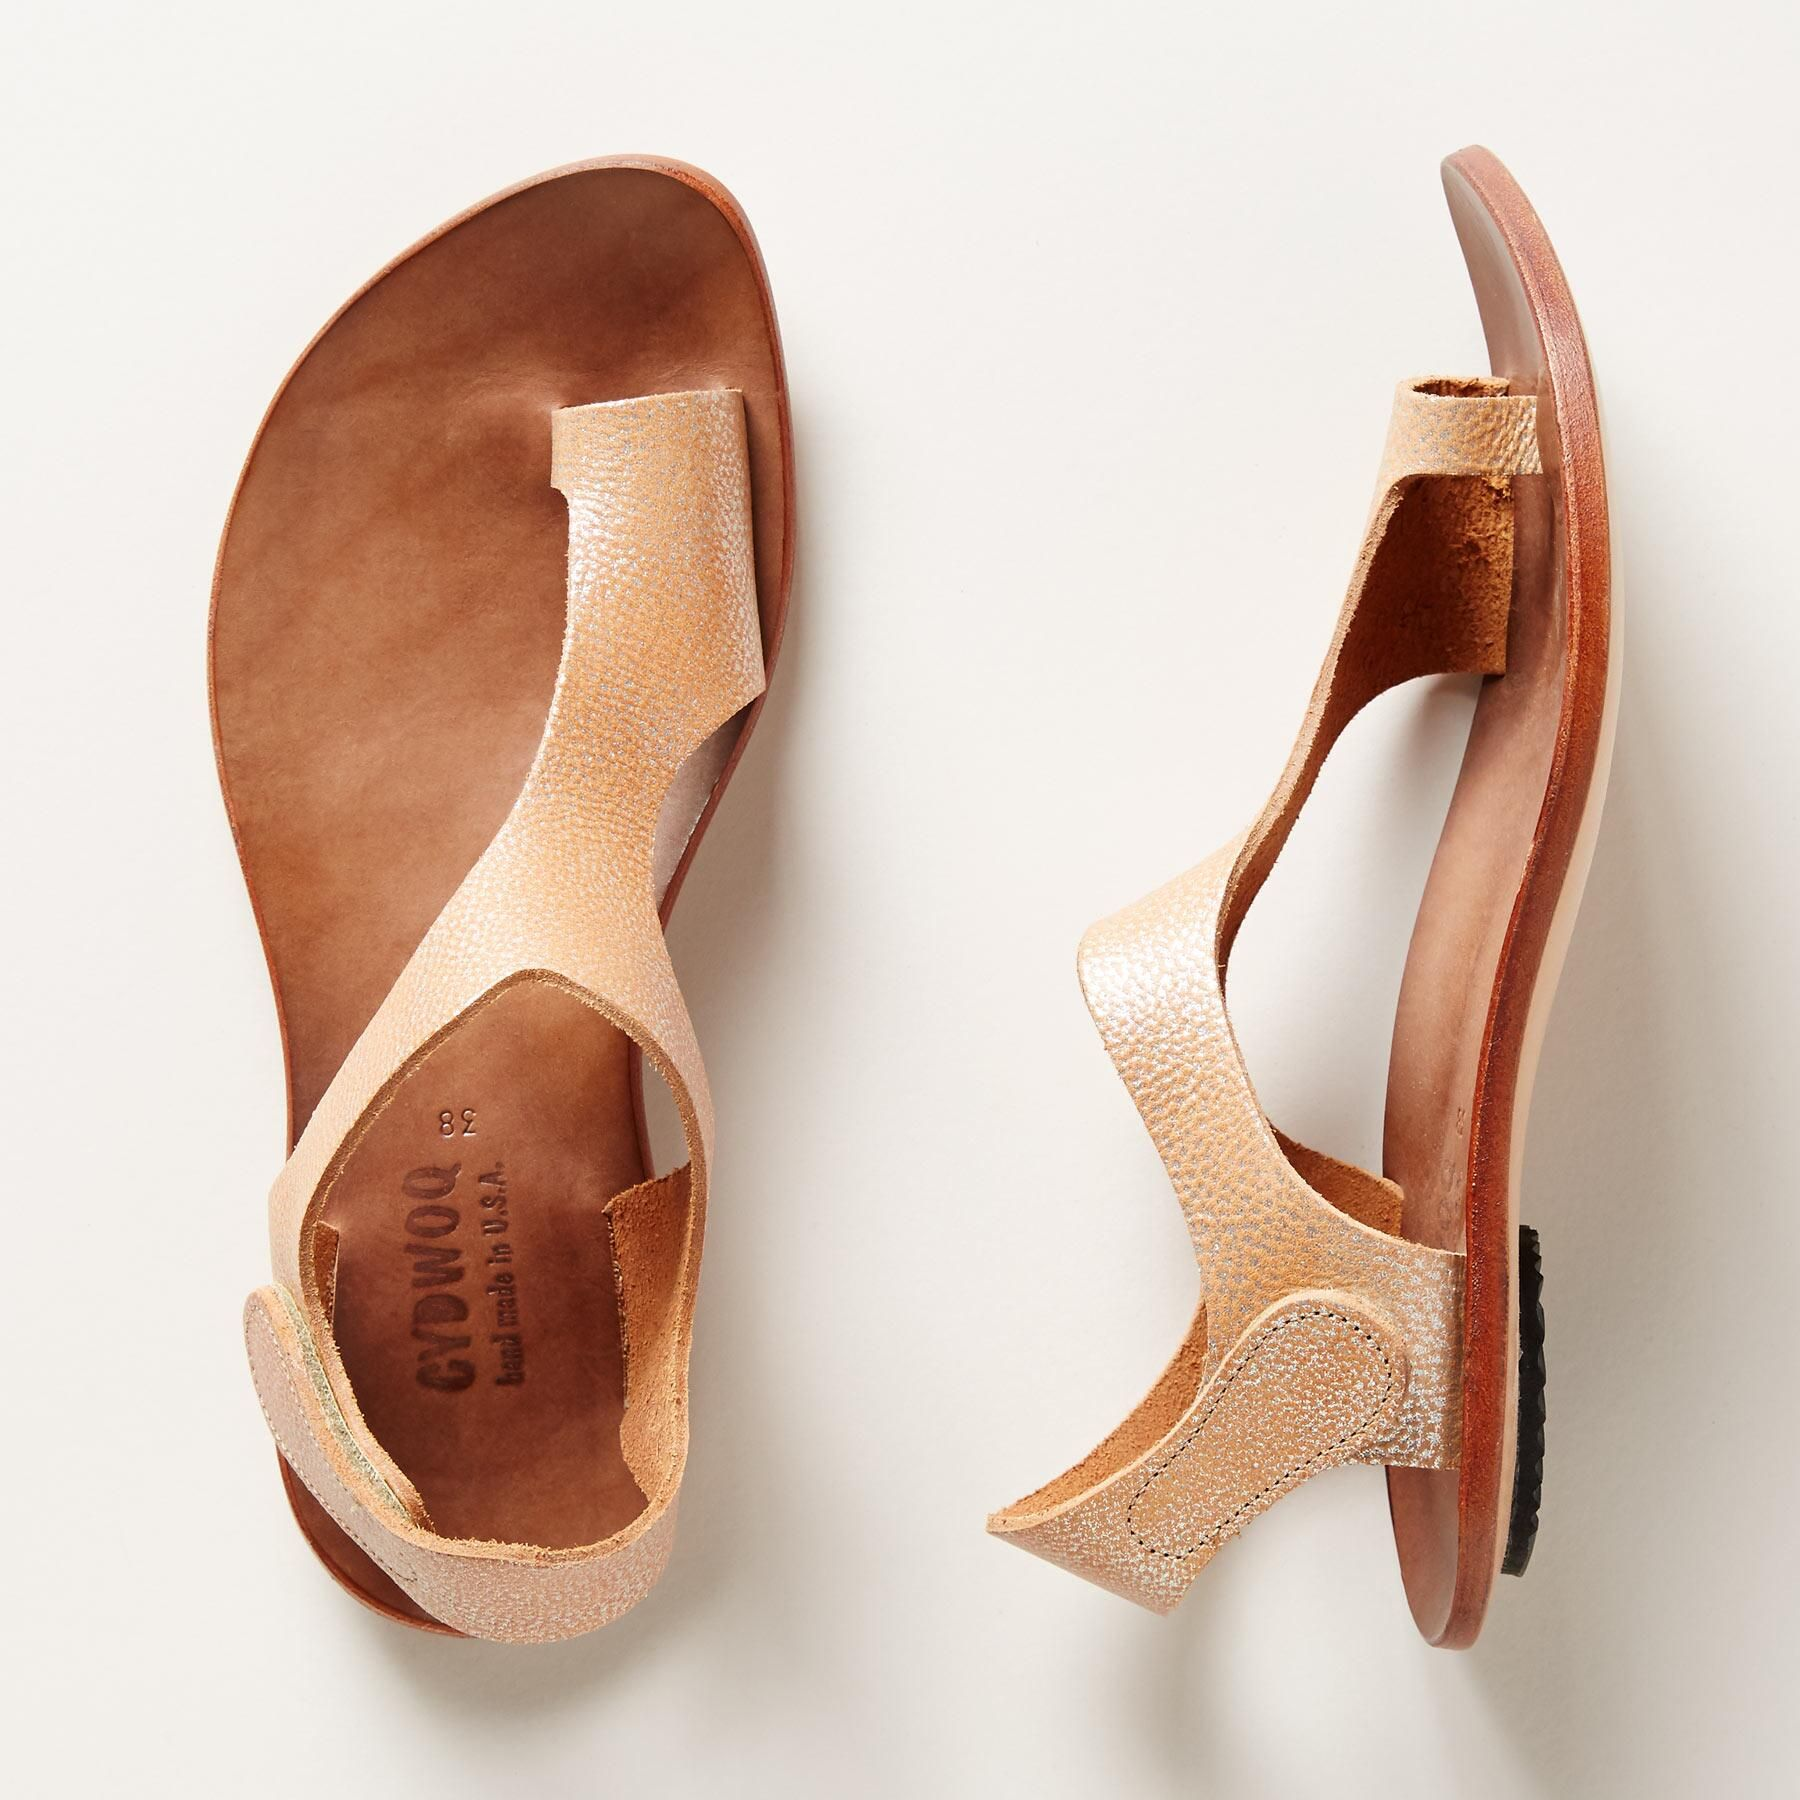 993d5ba8b9788 INEZ SANDALS BY CYDWOQ -- From CYDWOQ, the perfect leather toe sandals for  everyday